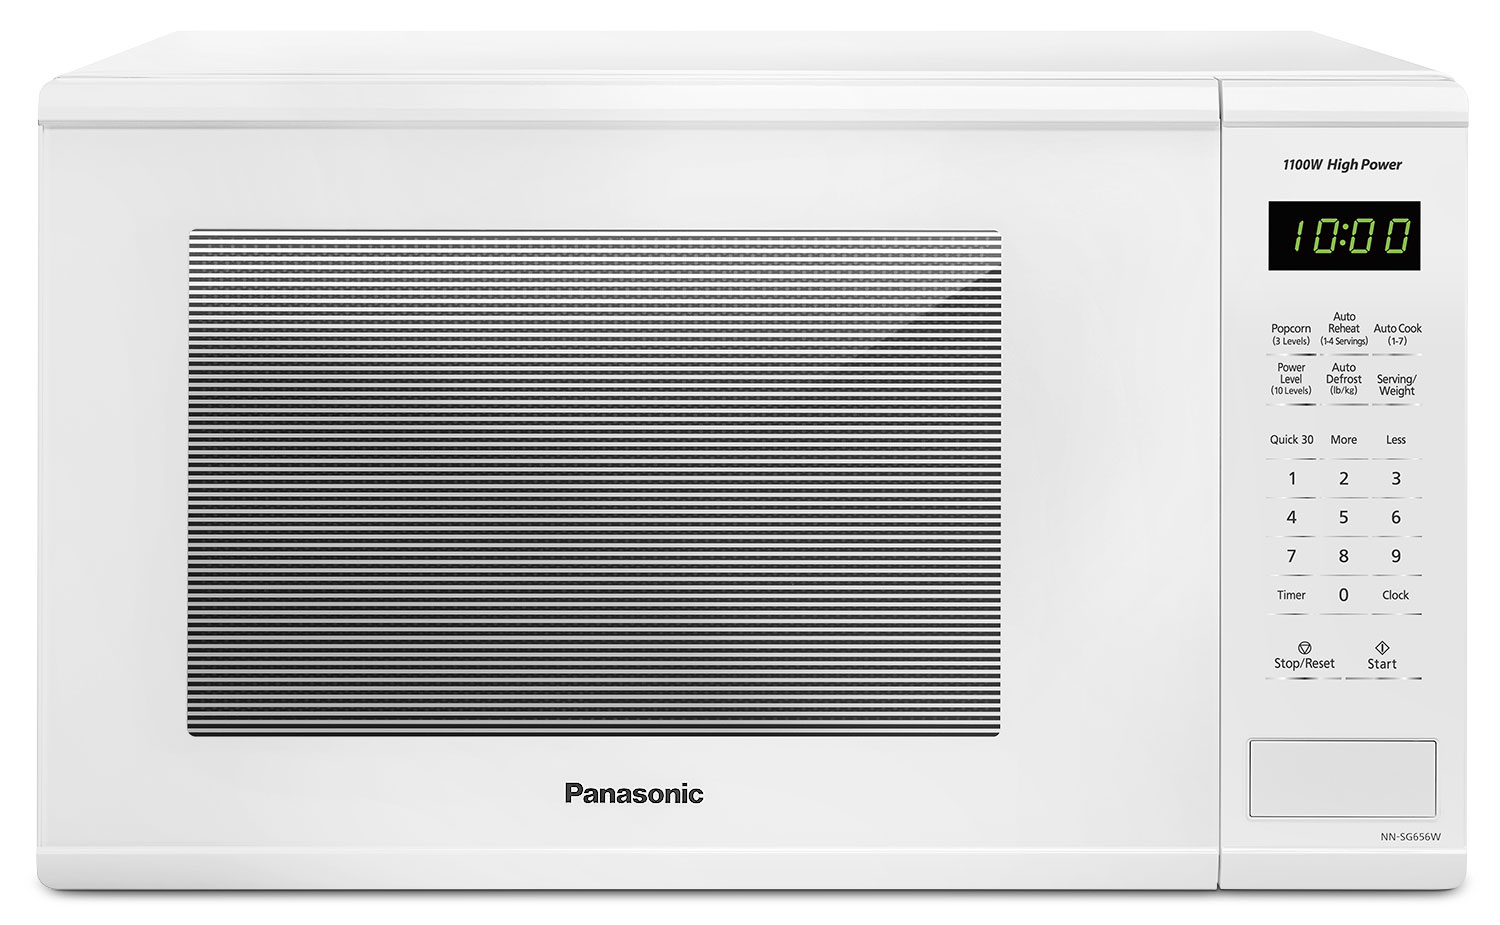 Cooking Products - Panasonic White Countertop Microwave (1.3 Cu. Ft.) - NNSG656W